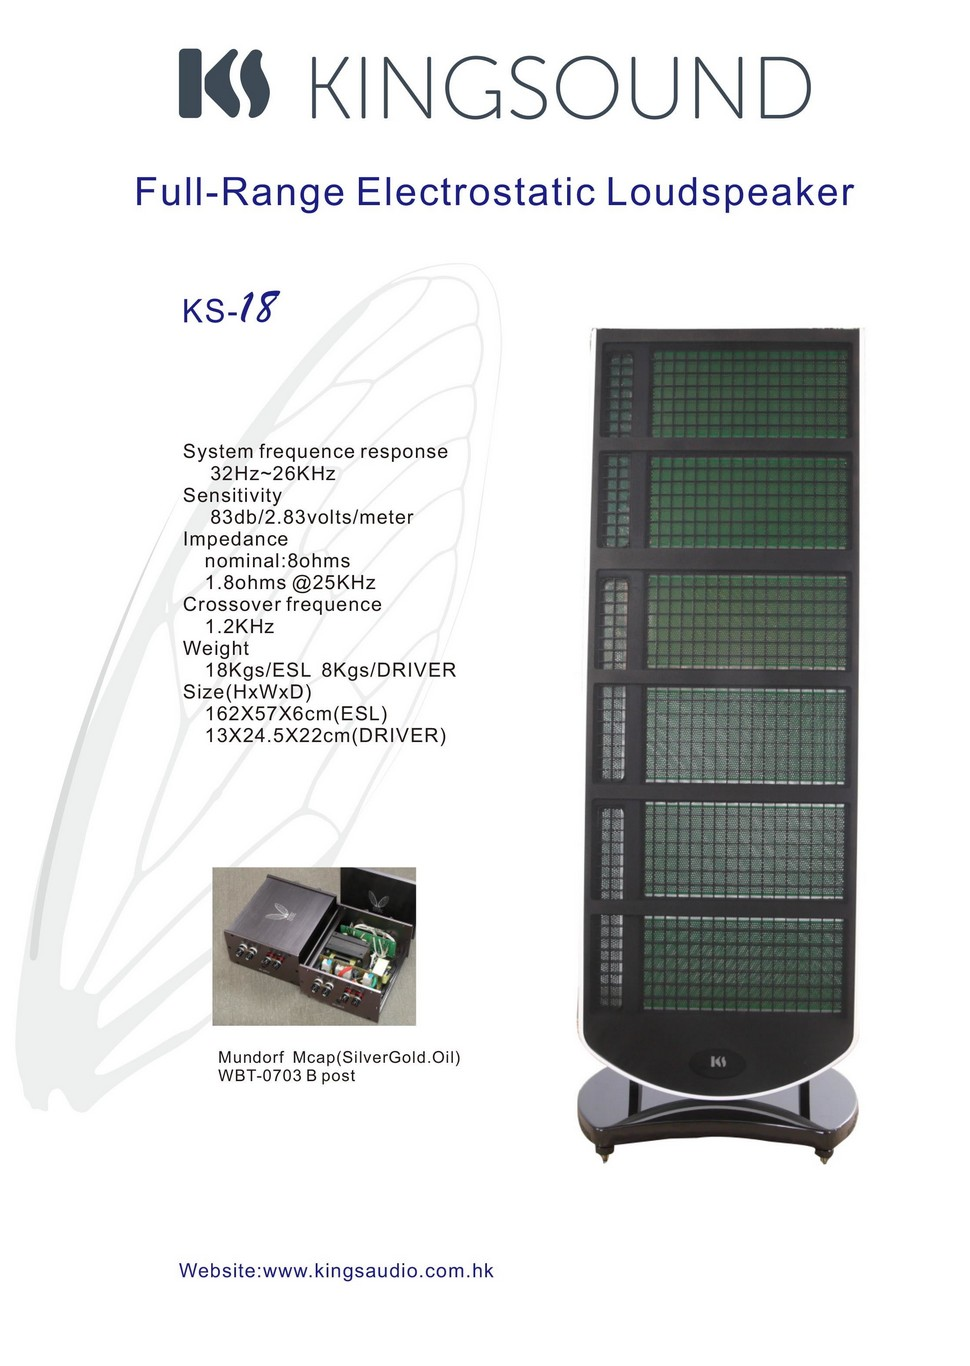 http://www.kingsaudio.com.hk/demo/files/D001b.jpg